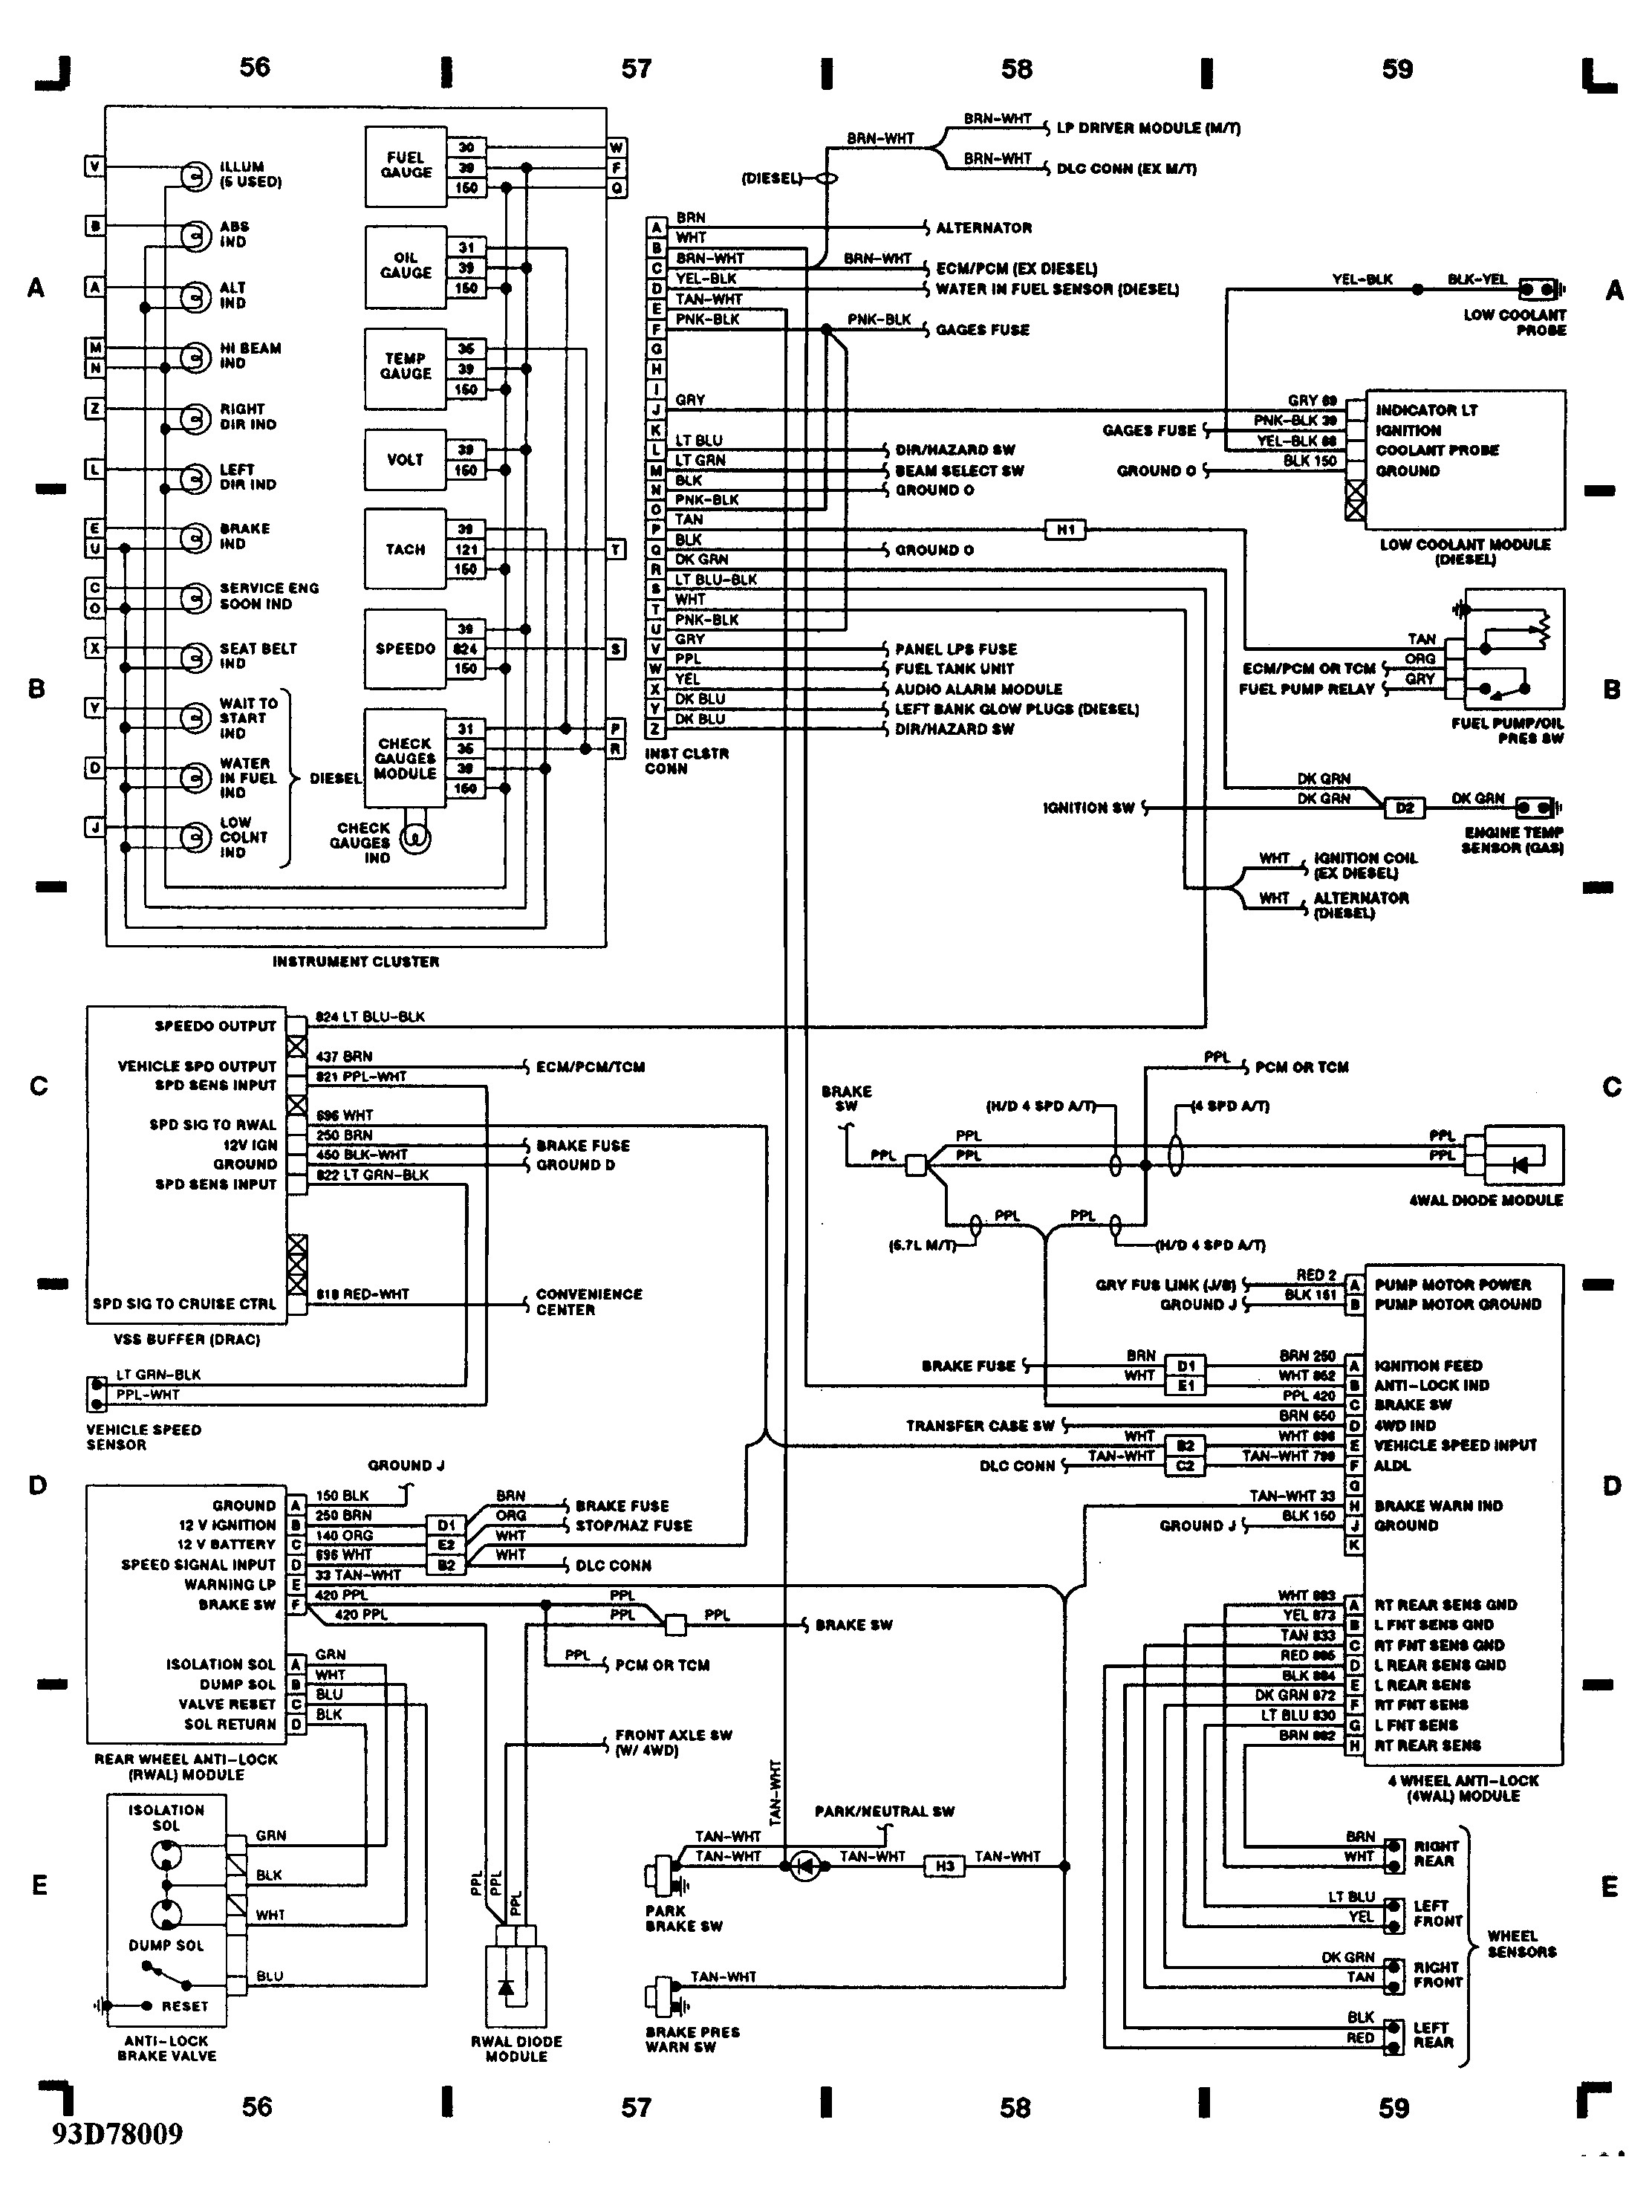 2000 chevy silverado wiring diagram Collection-5 7 vortec wiring harness diagram Collection 5 7 Vortec Wiring Harness Diagram Unique I Have 1-h